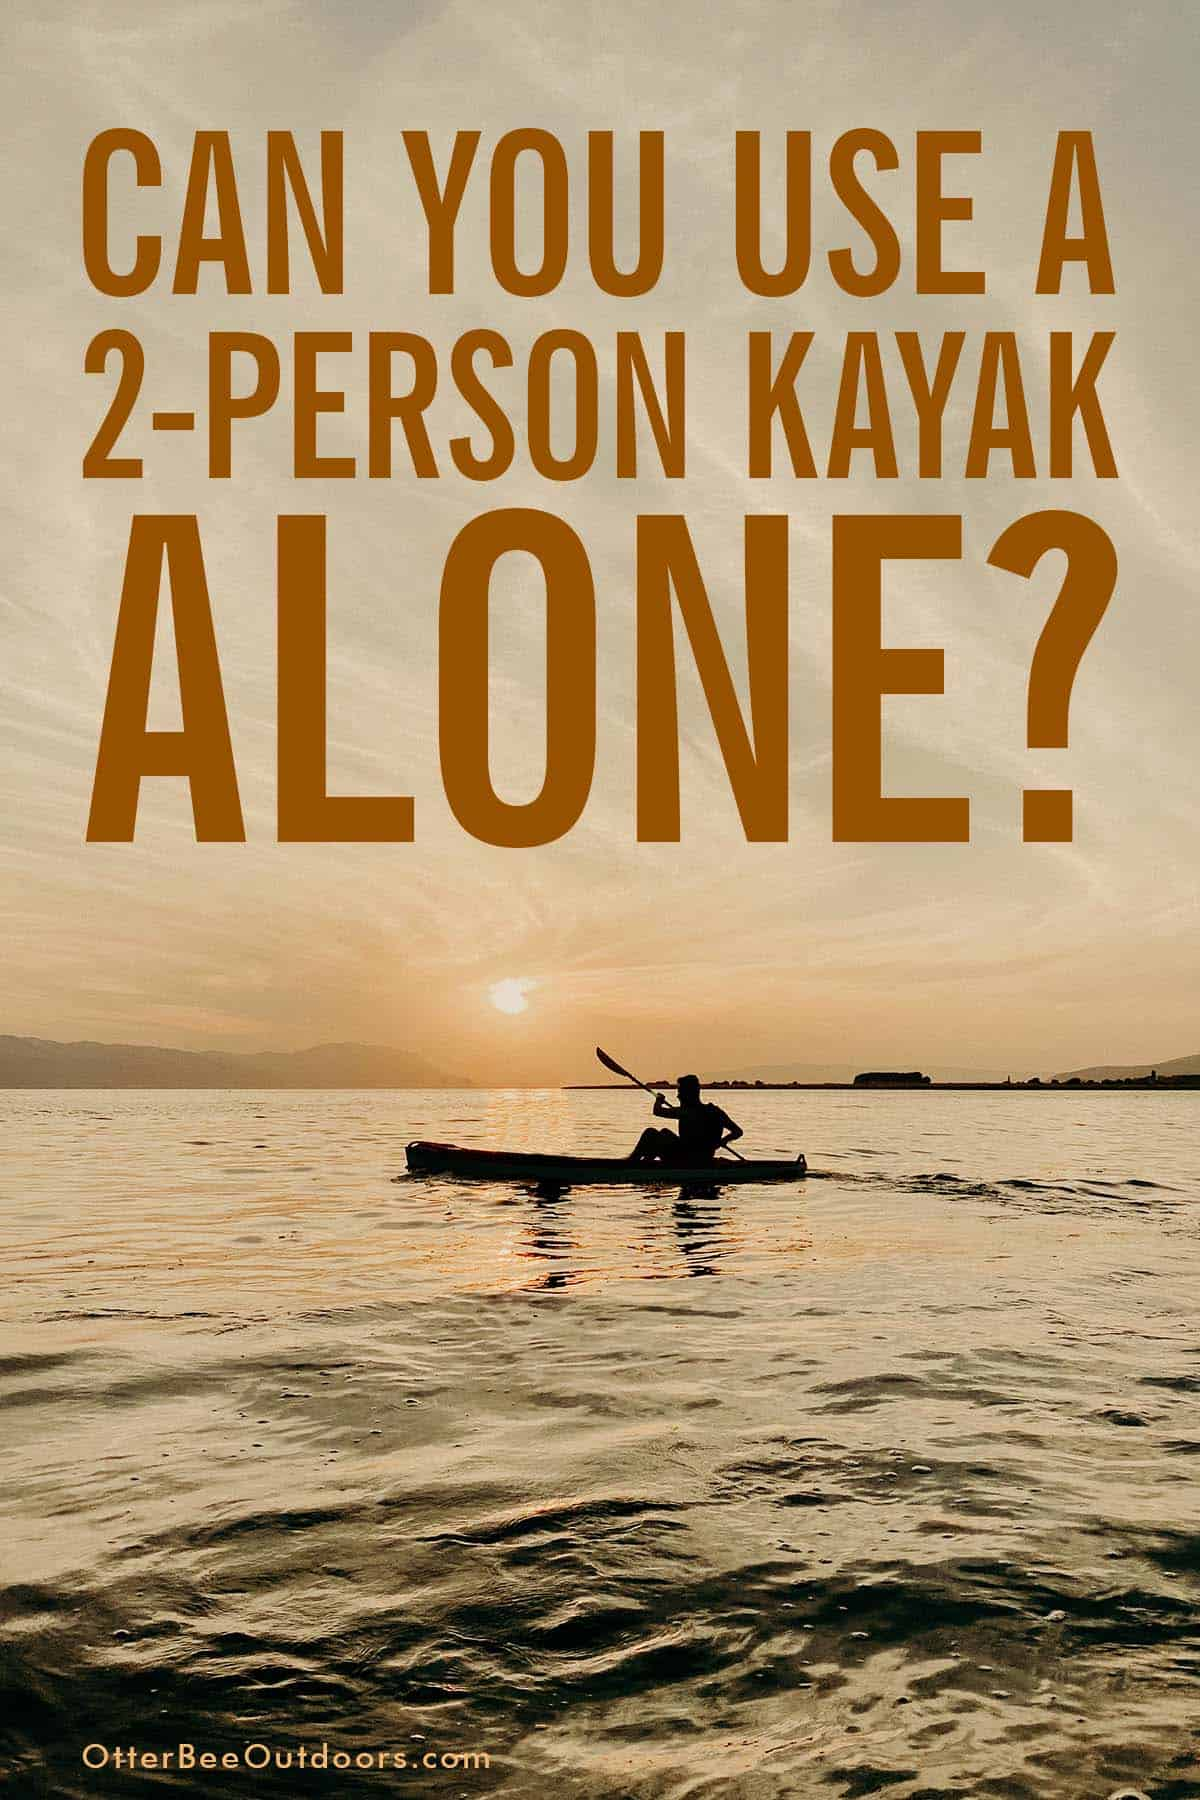 A man paddling a 2-person kayak alone at sunset. The graphic asks... Can You Use A 2-Person Kayak Alone?